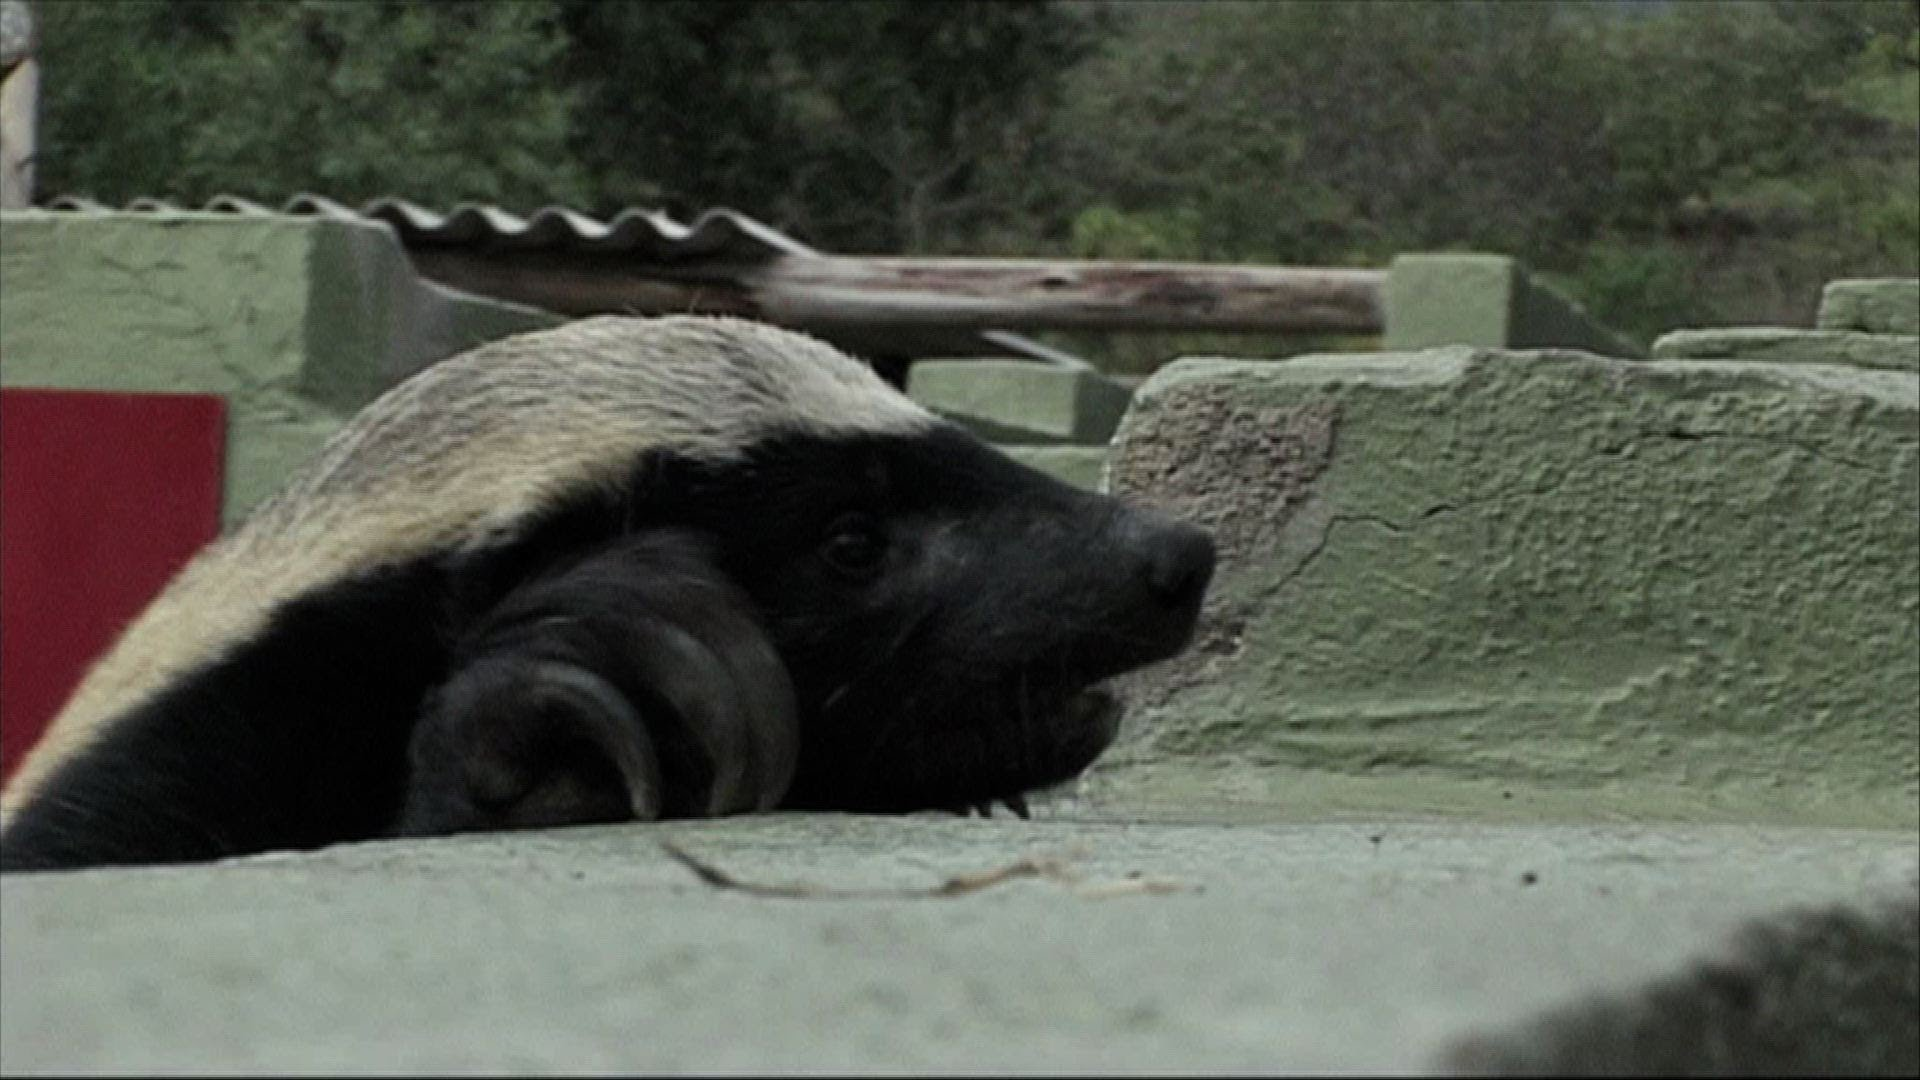 Stofle, The Incredibly Clever Honey Badger Who Has Escaped Every Enclosure Made For Him